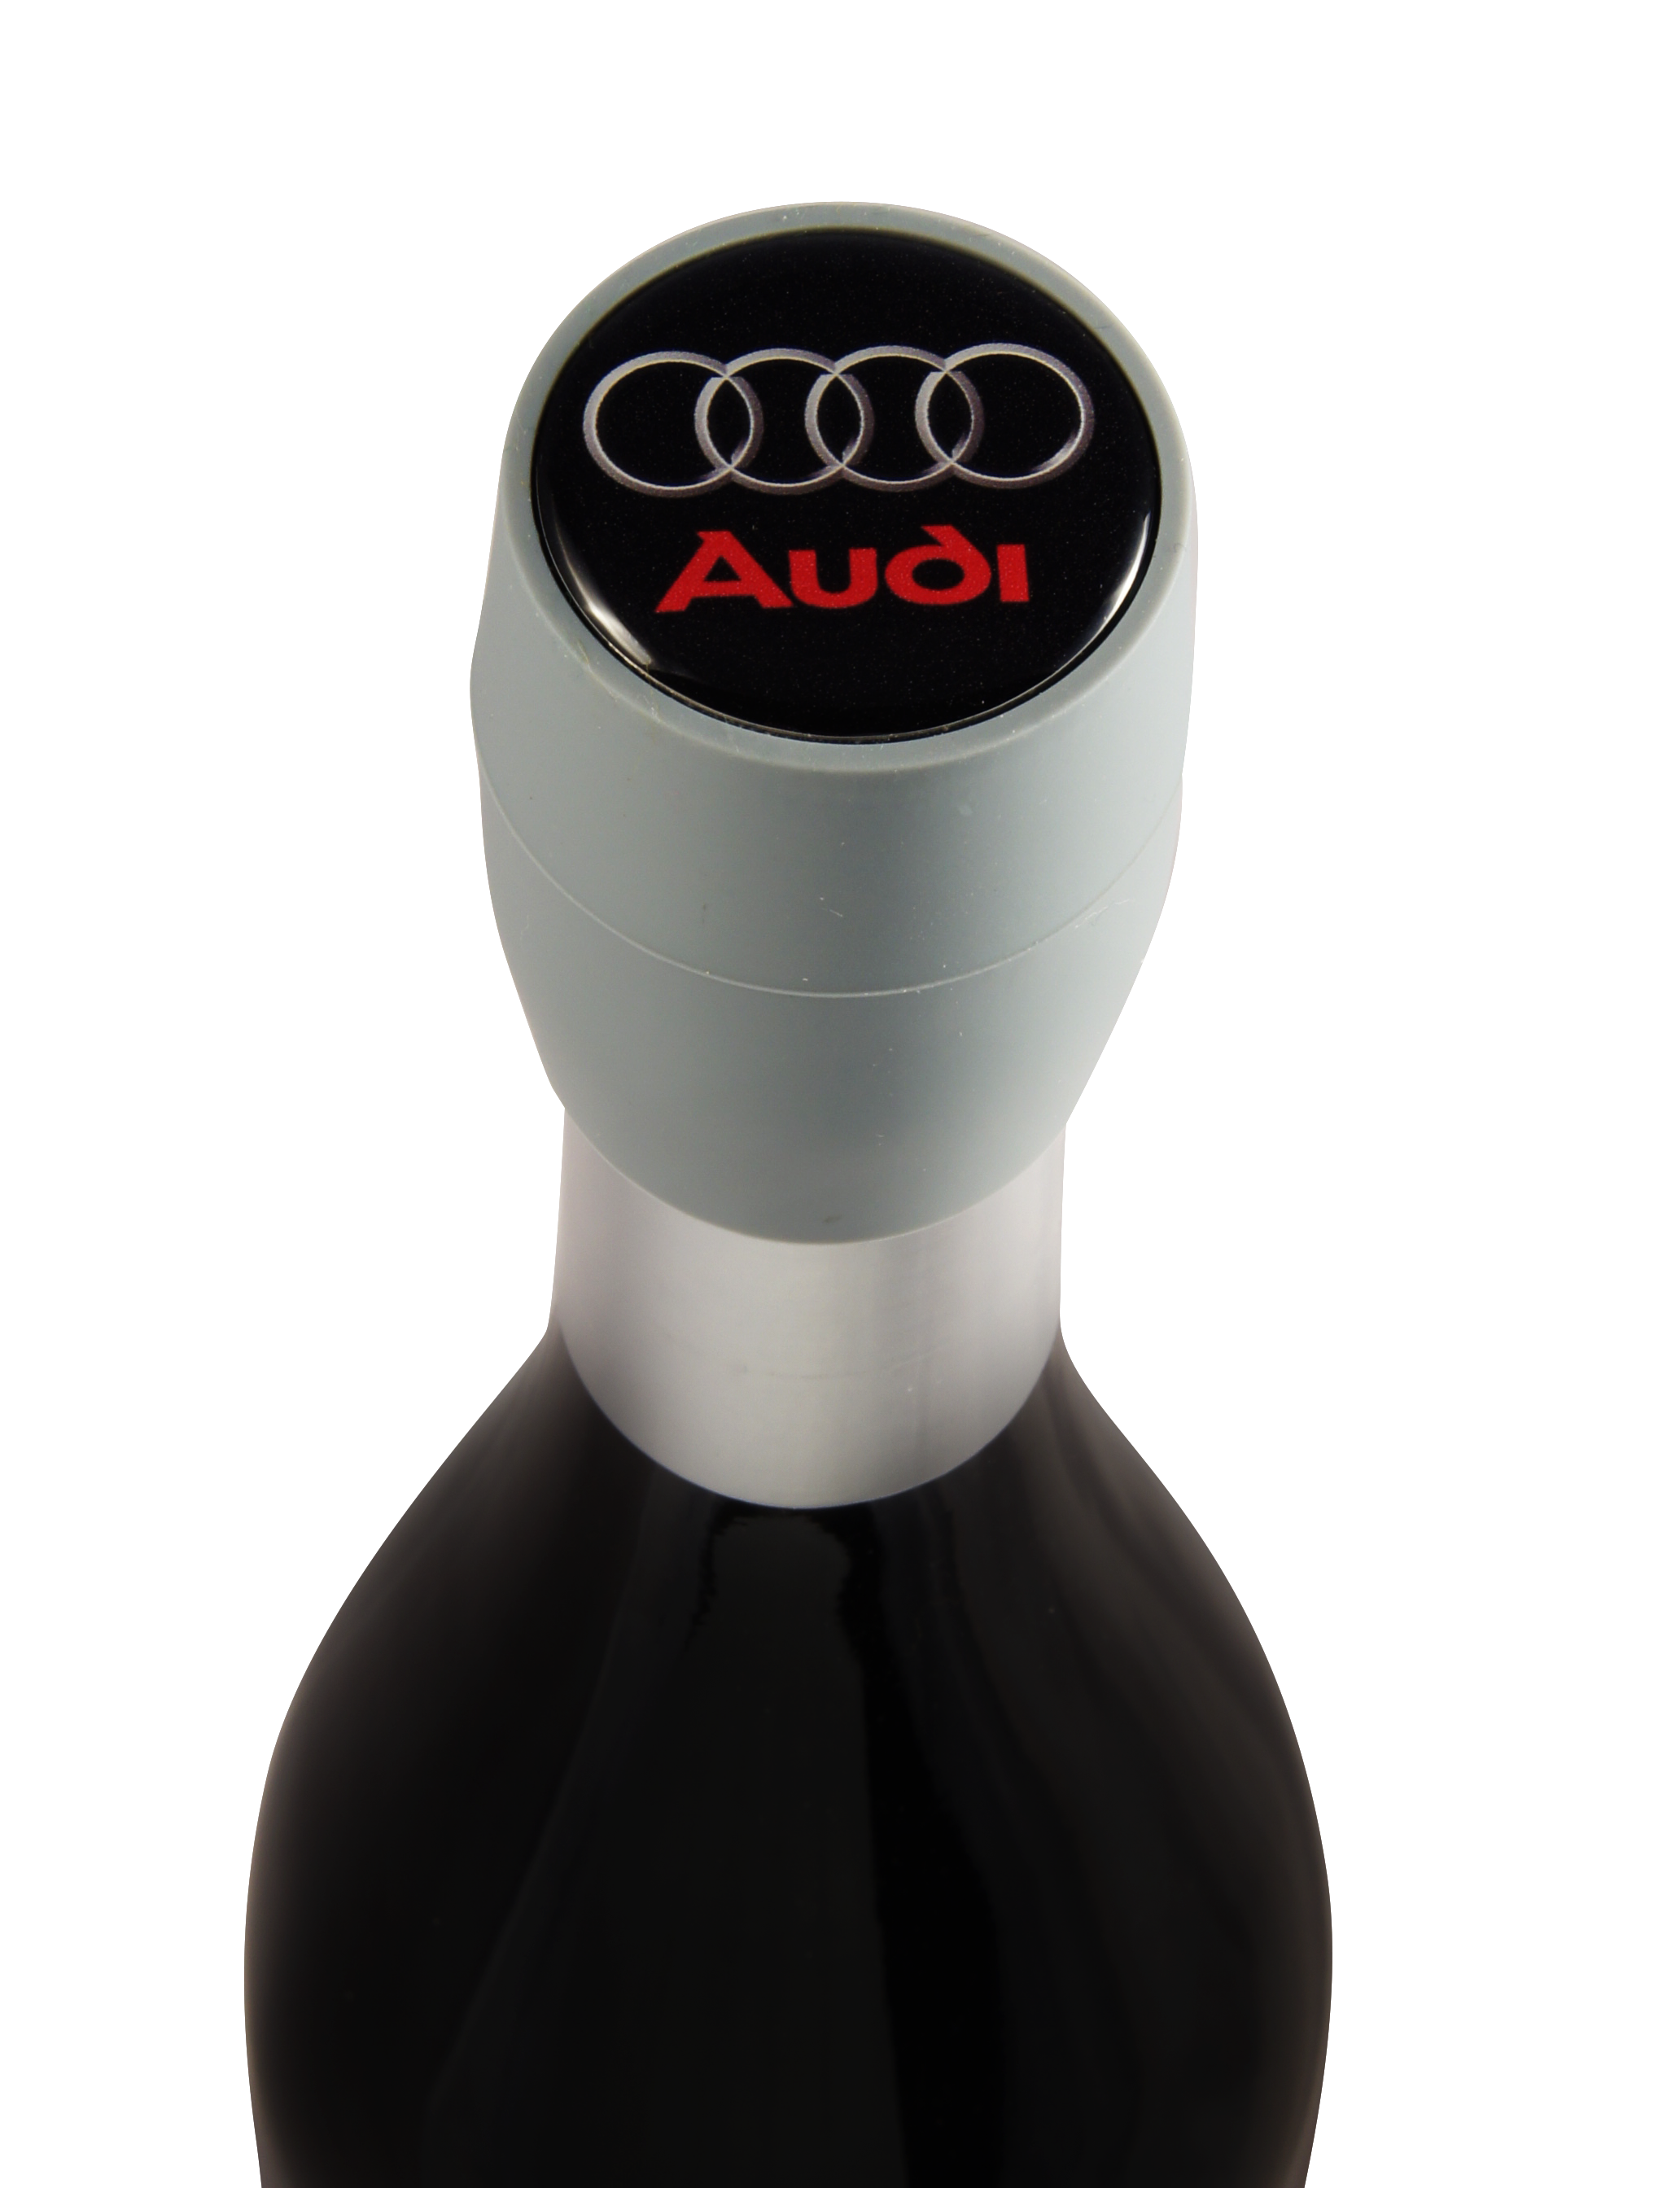 Cap-on-Bottle-Audi-Grey-half_high res PS.png